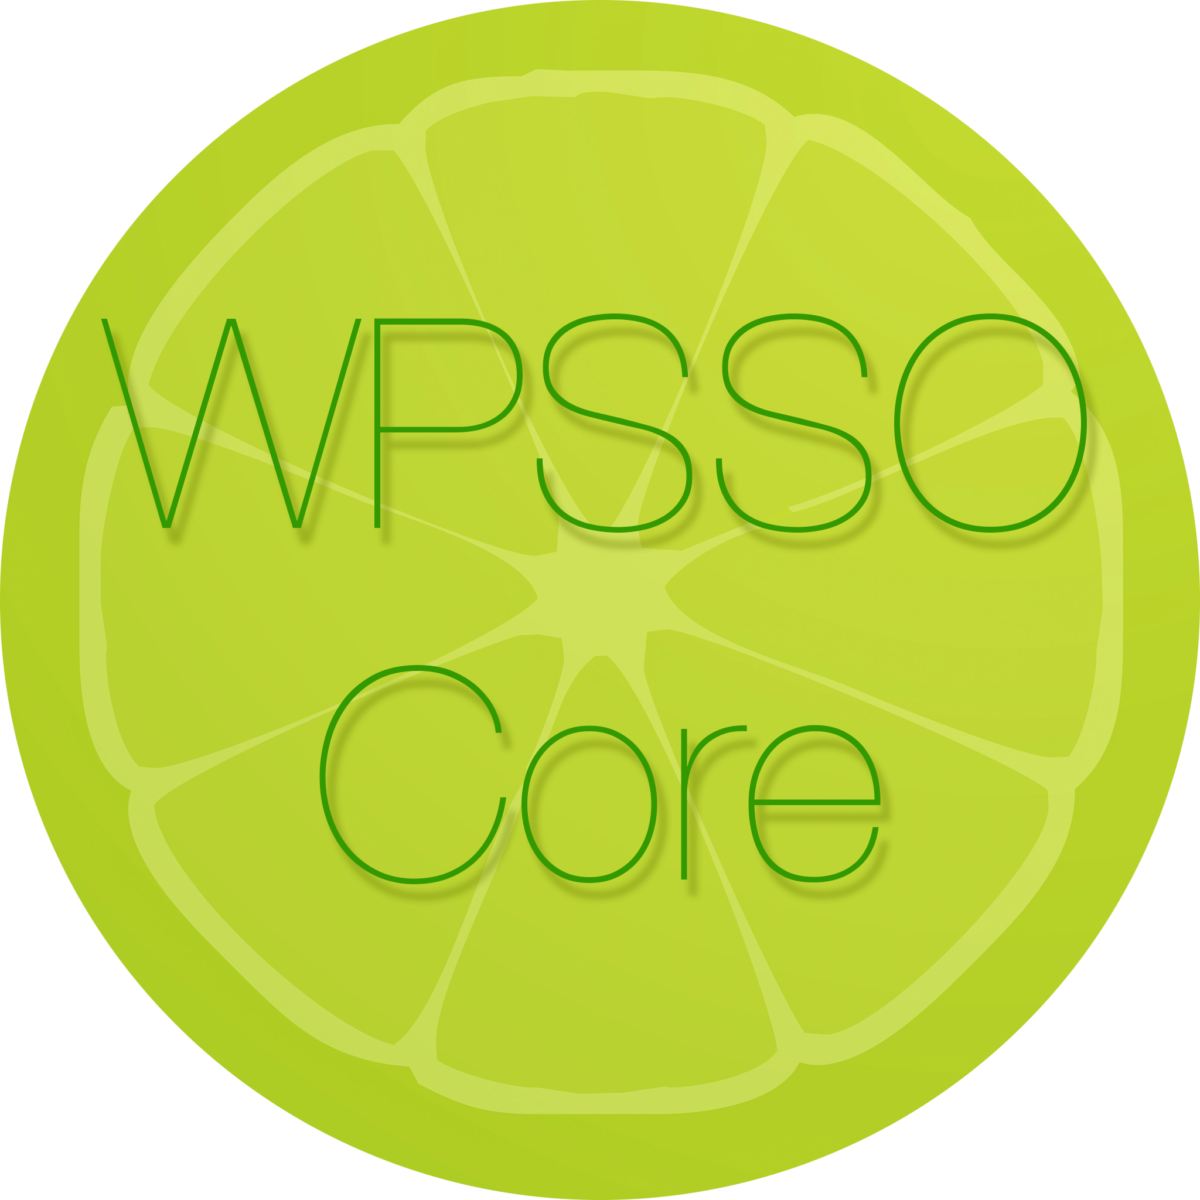 the events calendar plugin already includes basic json ld support but the wpsso organization markup and wpsso place location and local business meta